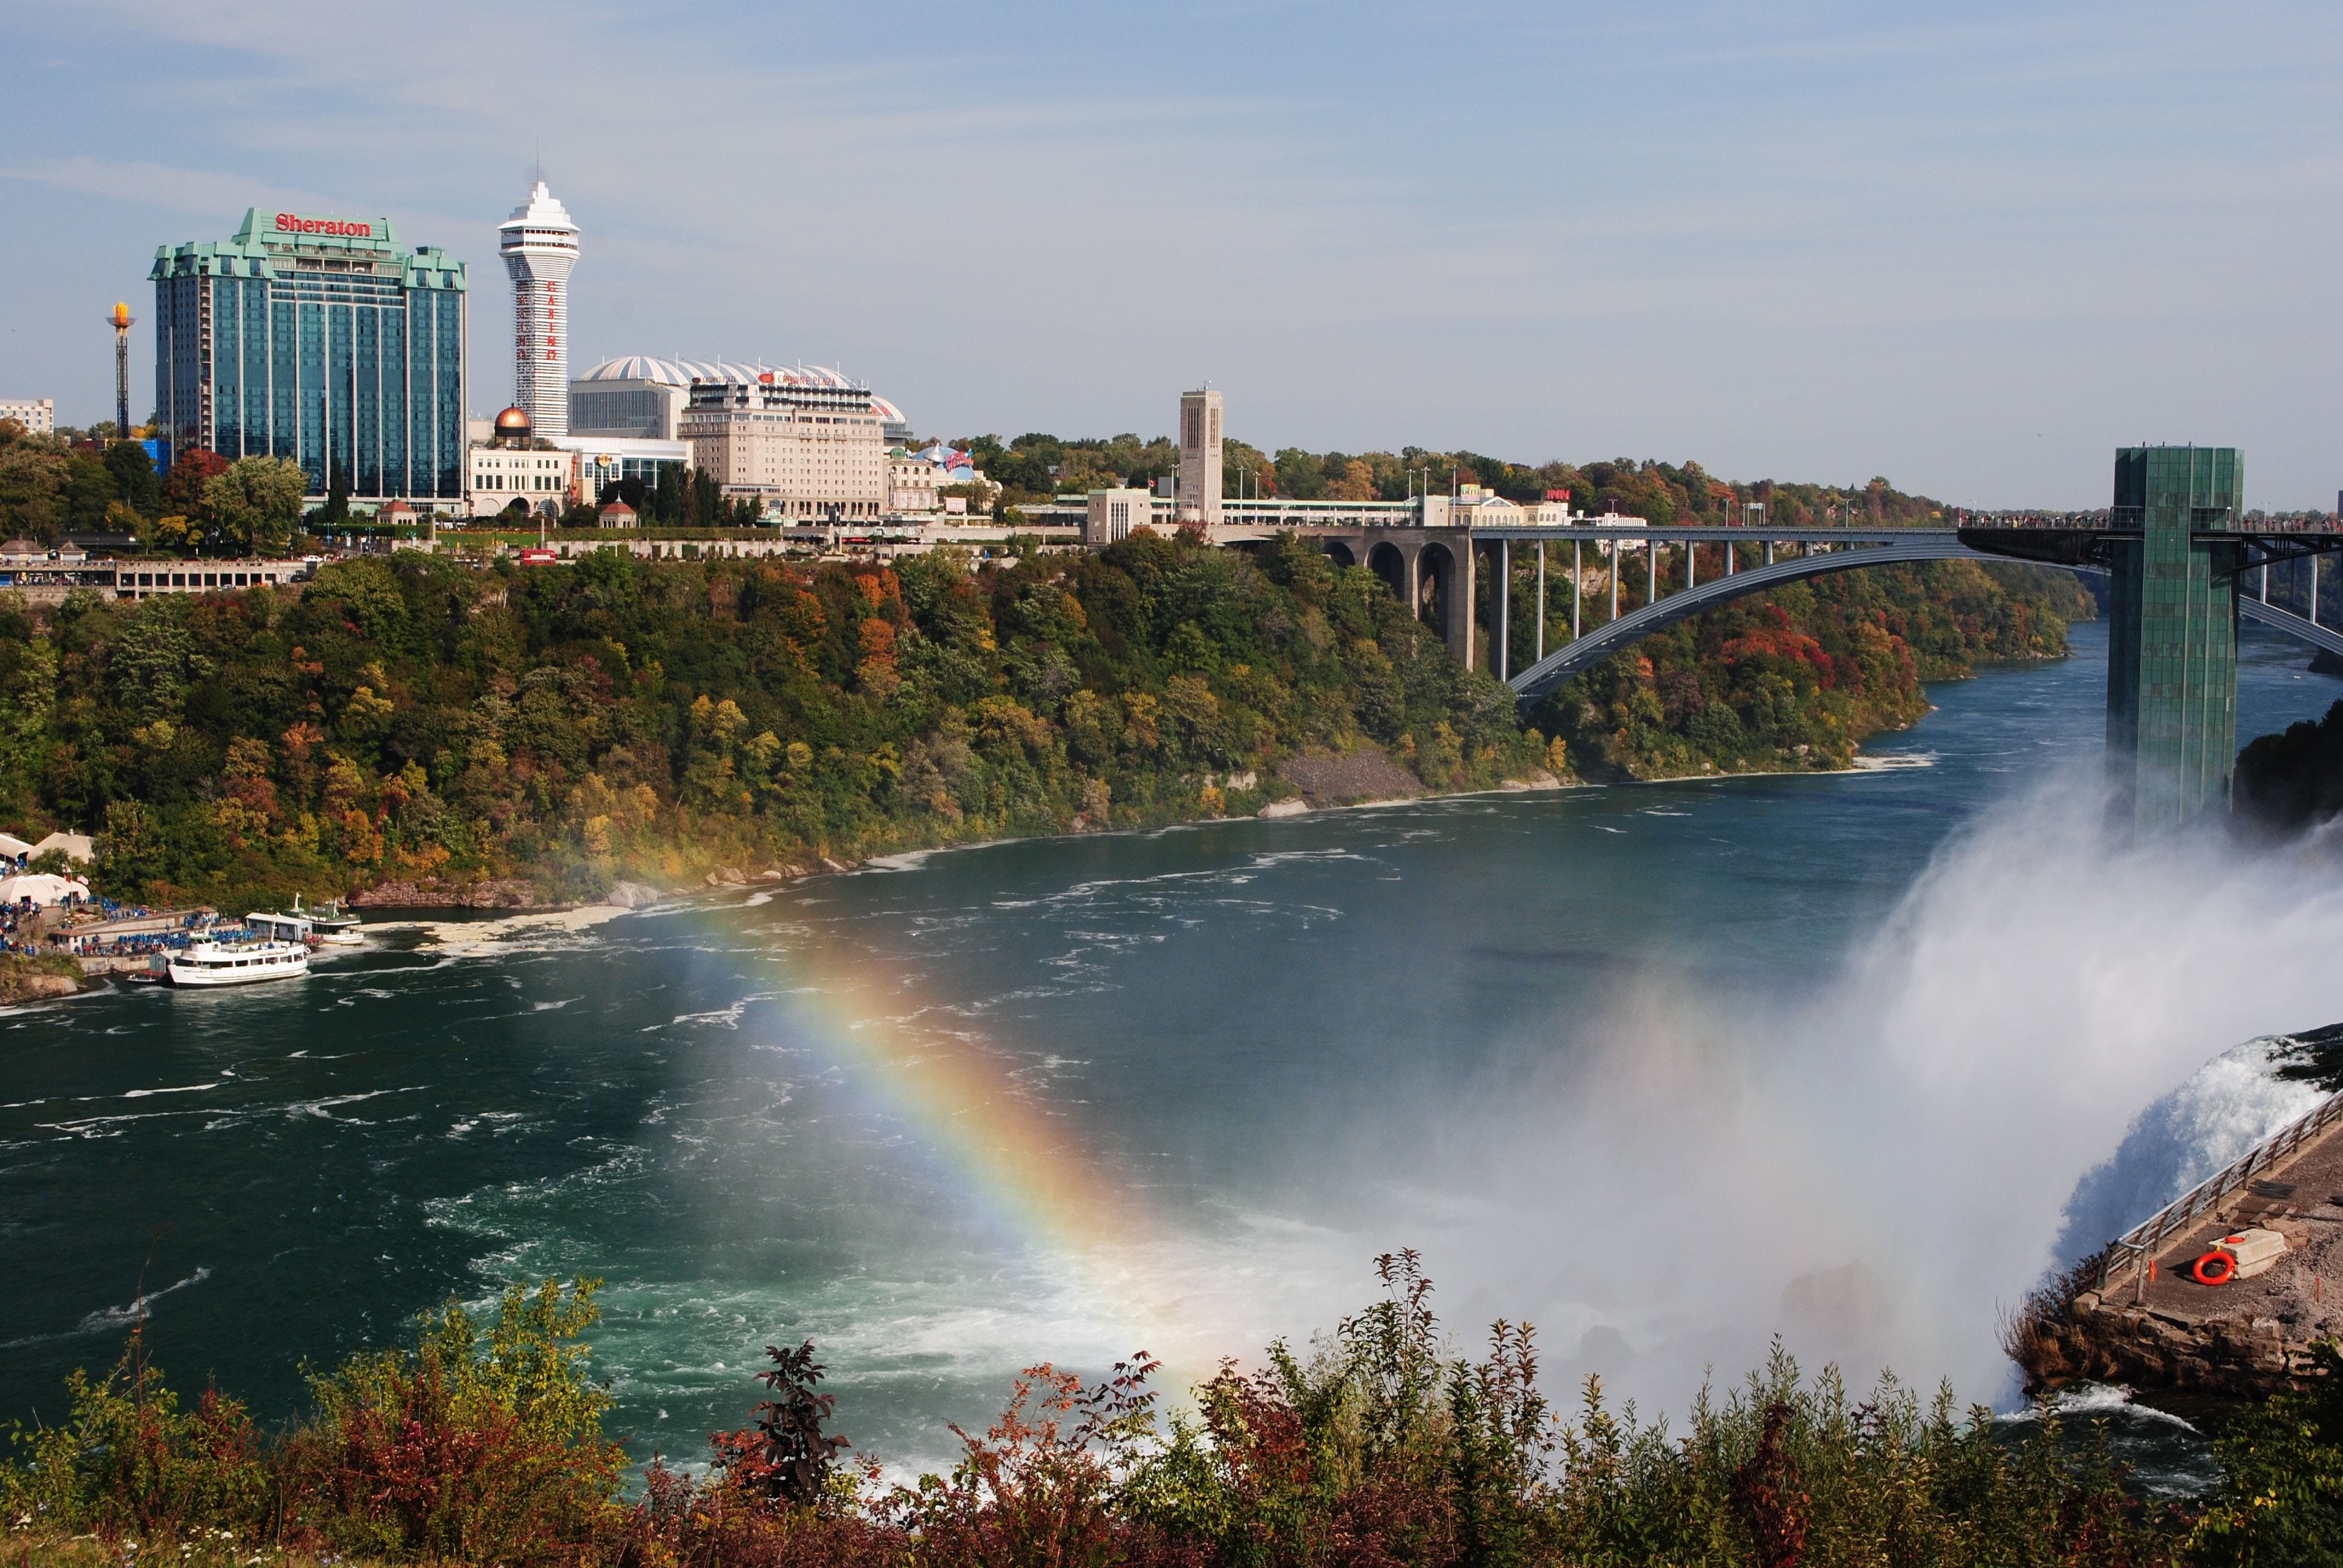 Niagara Falls (the falls and city) as seen from Goat Island State Park. (Kathleen Eussen)